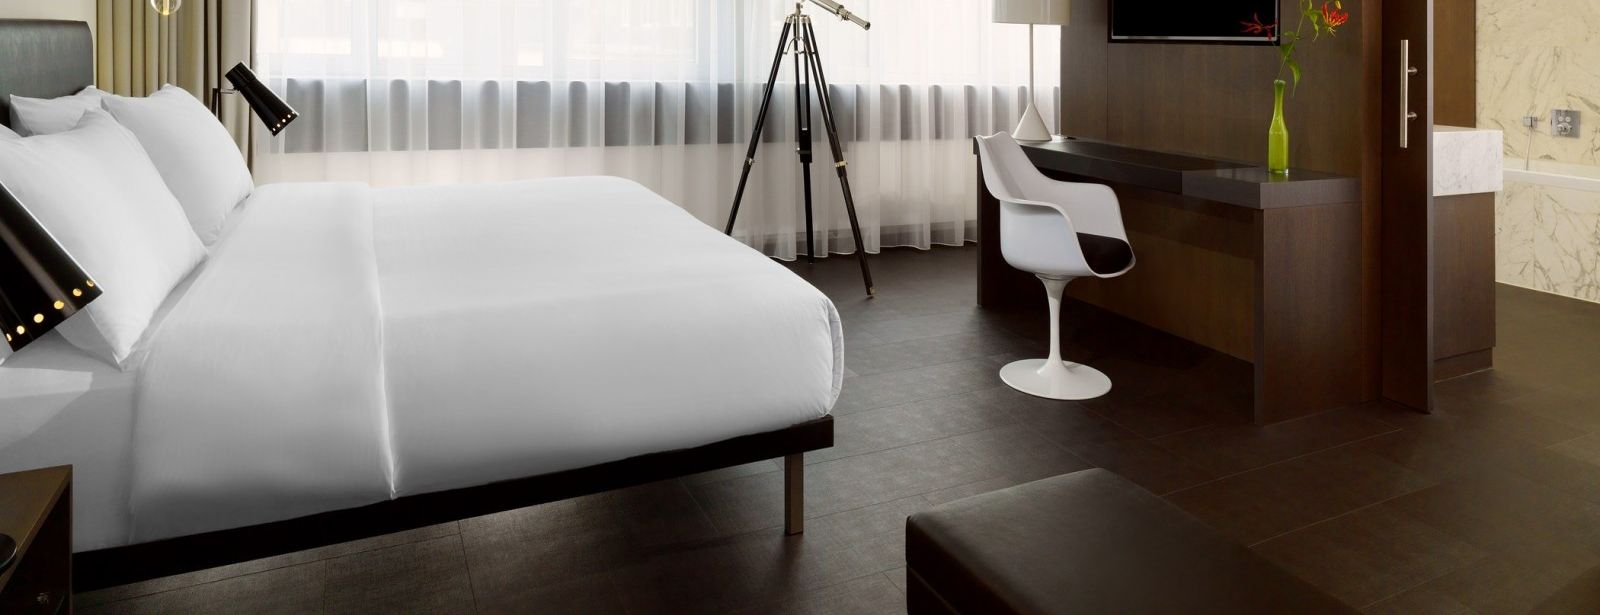 Bedroom of the Skyline Suite at Le Méridien Frankfurt Hotel